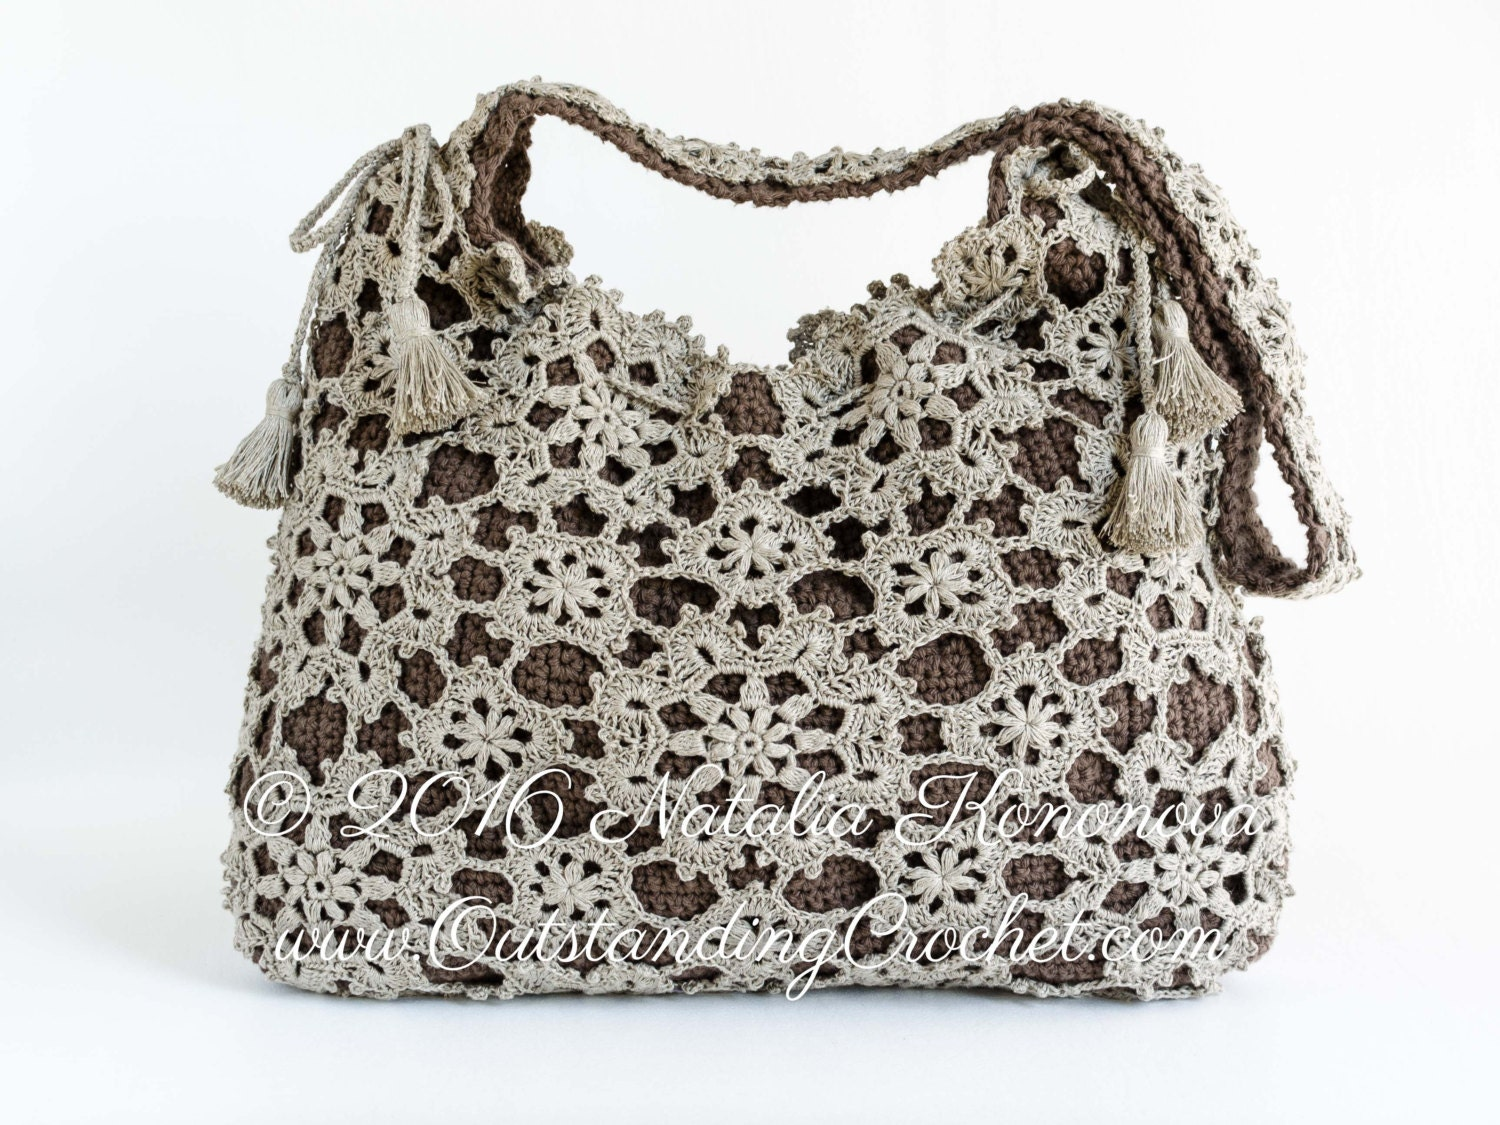 Crochet Satchel Bag Pattern : ... Evening Bags Crossbody Bags Hobo Bags Shoulder Bags Top Handle Bags